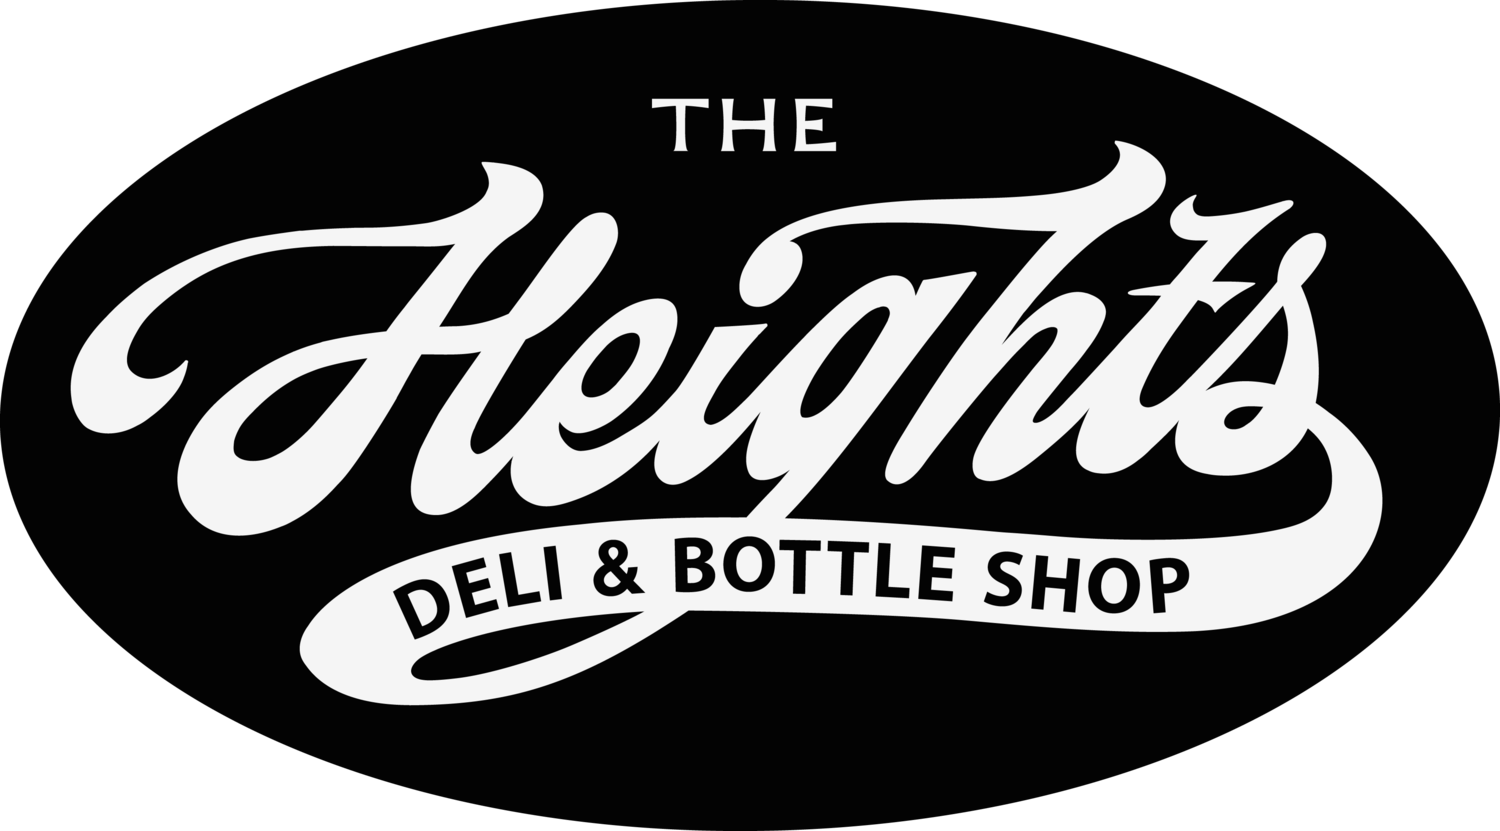 Location the heights deli bottle shop the heights deli bottle shop biocorpaavc Image collections